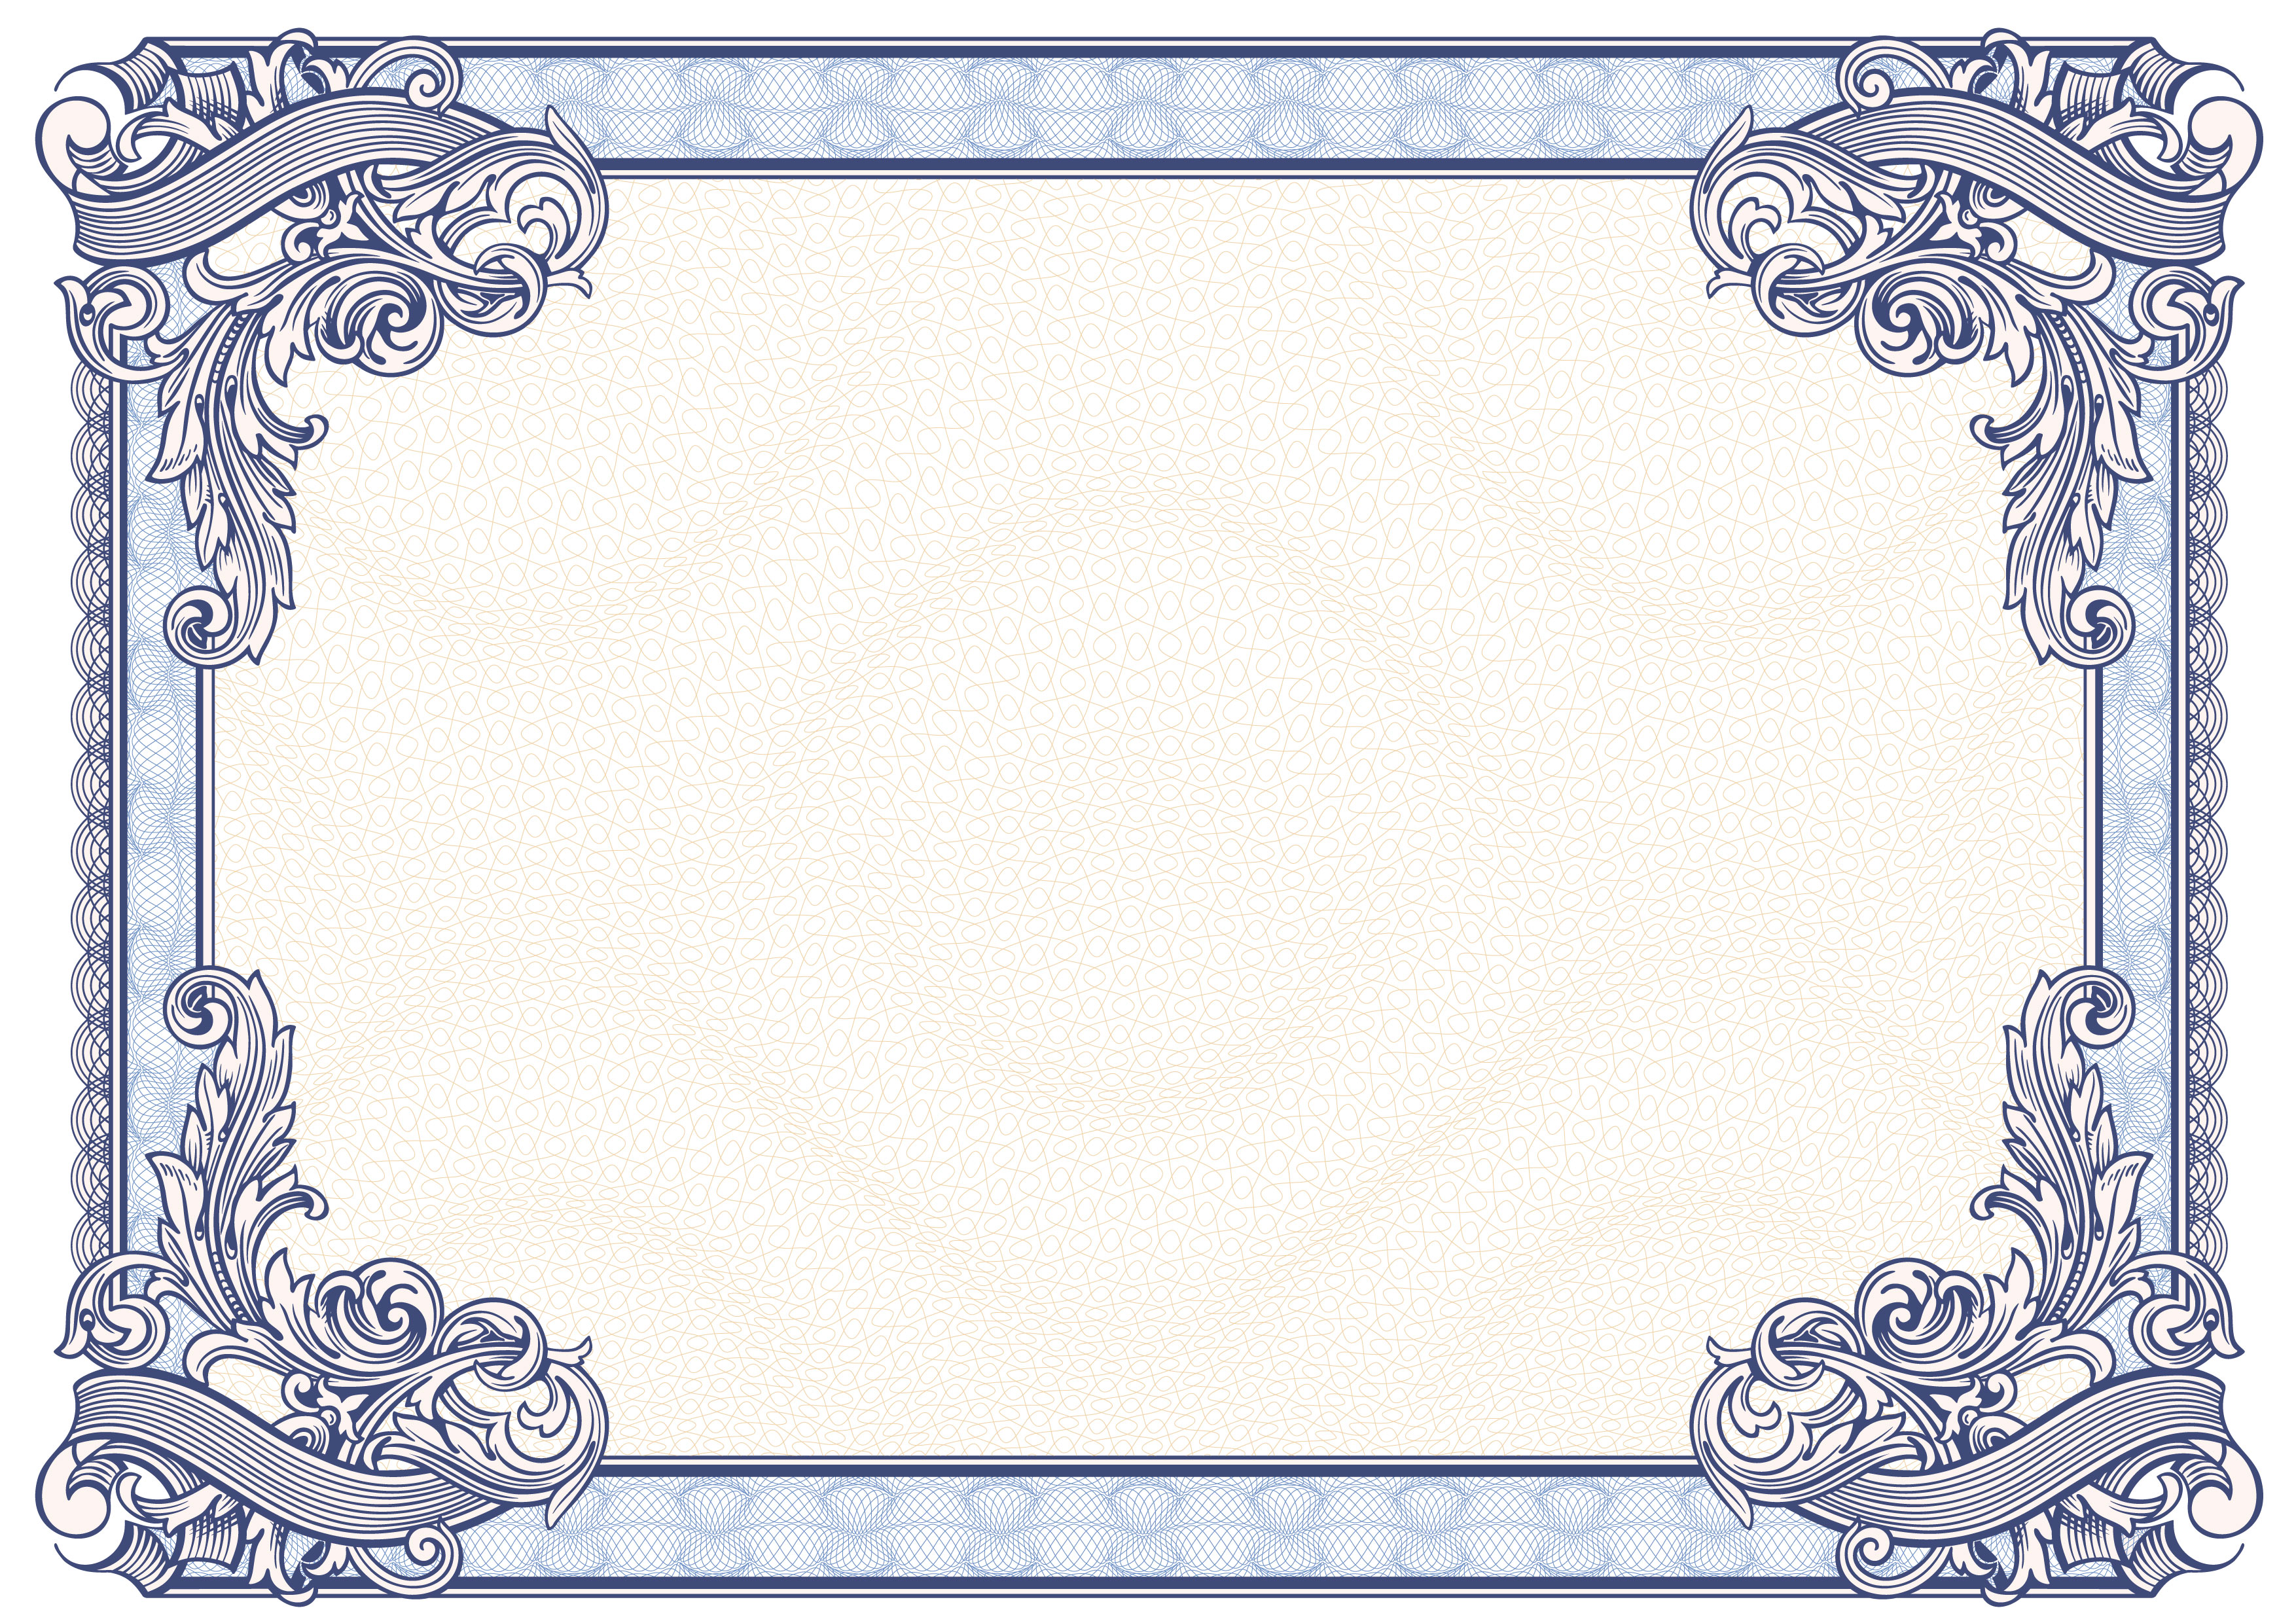 Certificate Border Vector Free at GetDrawings com | Free for